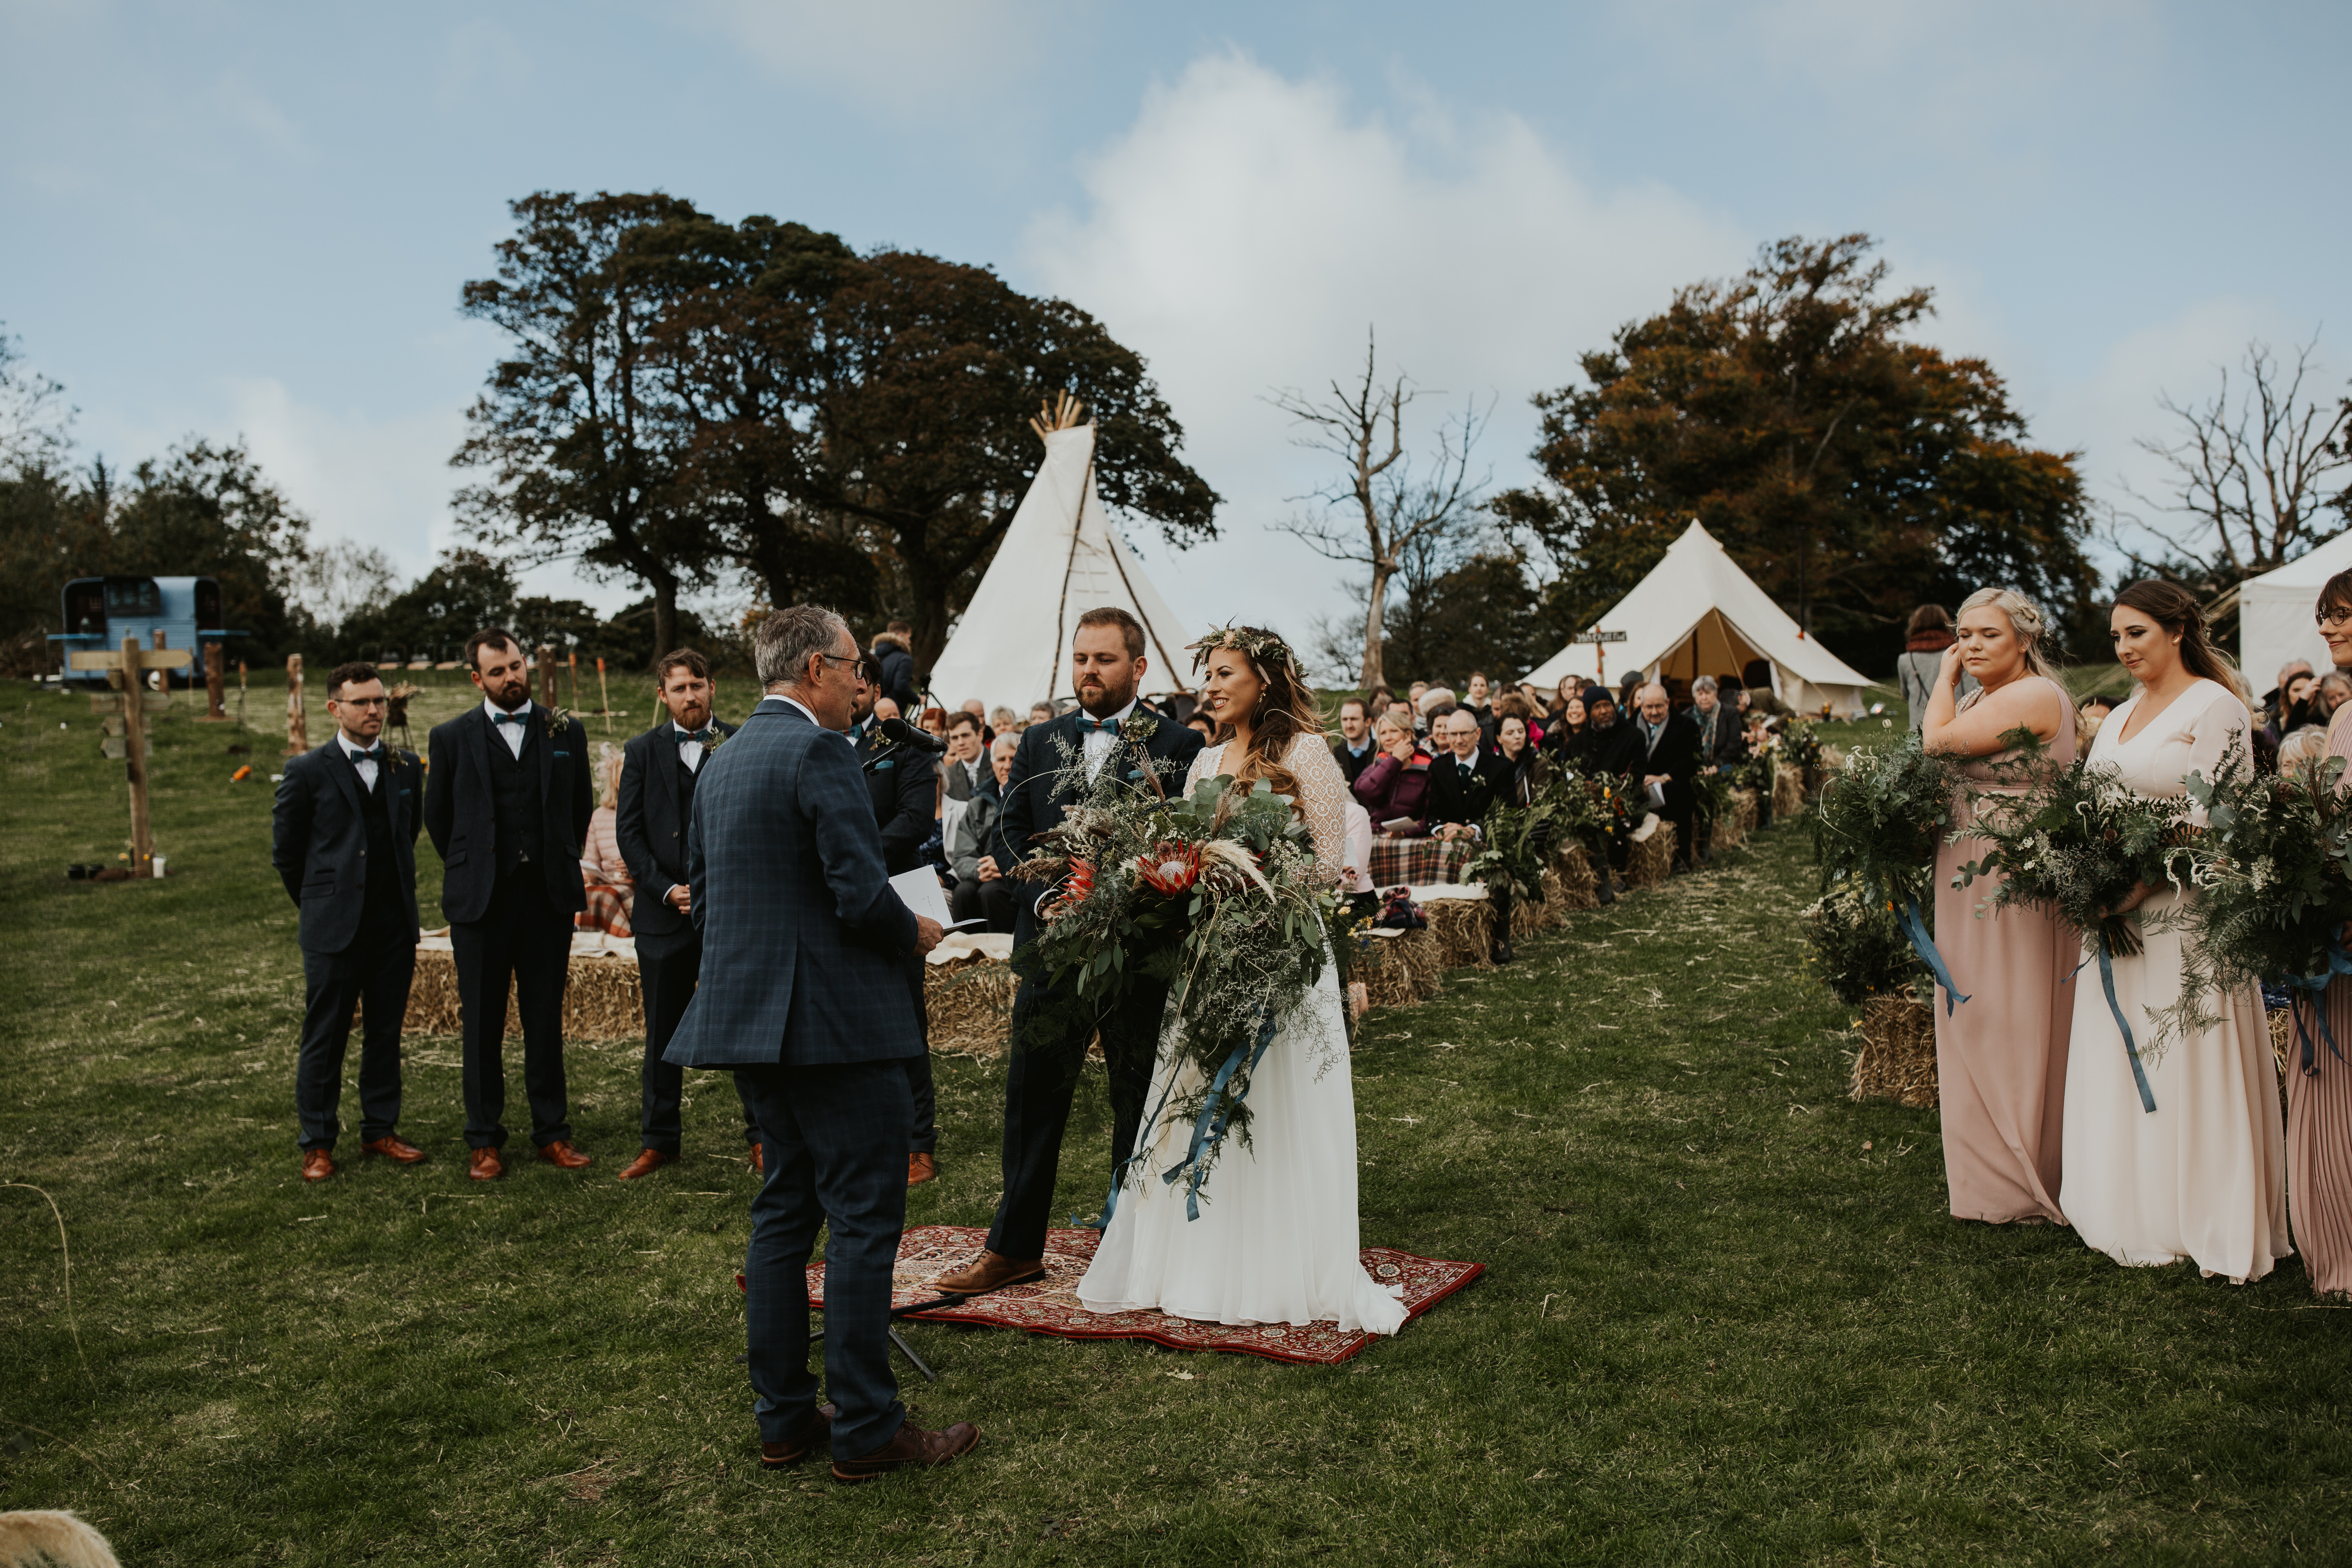 PapaKåta couple Eilidh & Lloyd's Sperry Wedding in Glenfarg, Perthshire captured by Colin Ross Photography- Outdoor Scottish Ceremony, Flowers by Cordon Farm Flowers